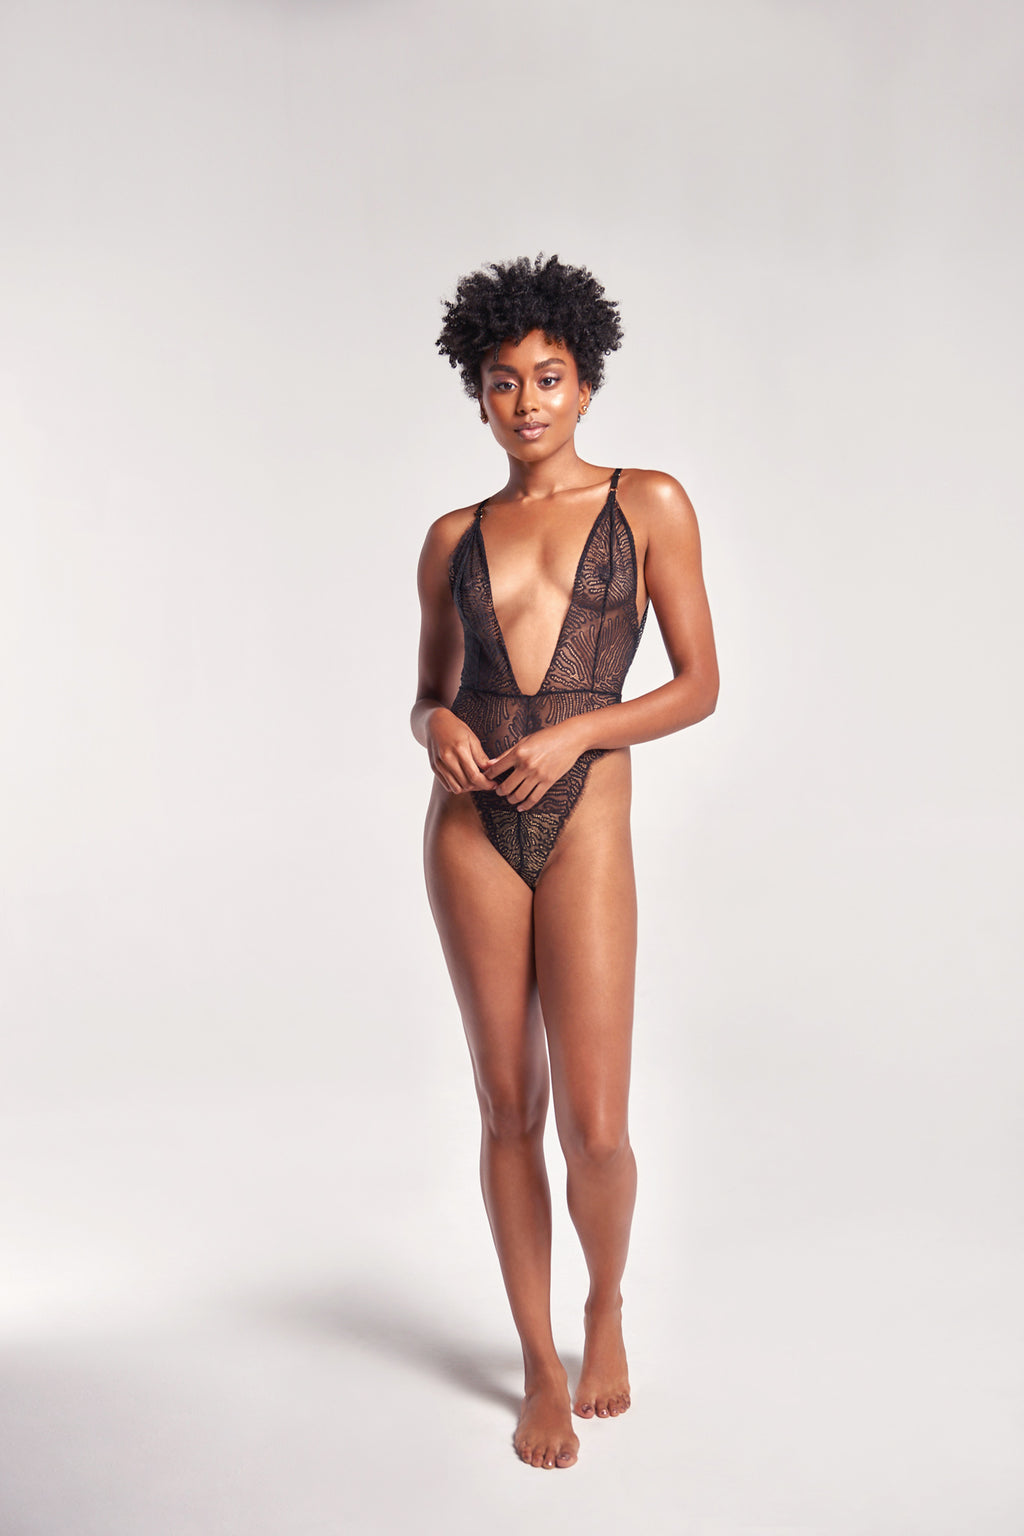 Sanctuaire-Suzy-Black-black-body-suit-lingerie